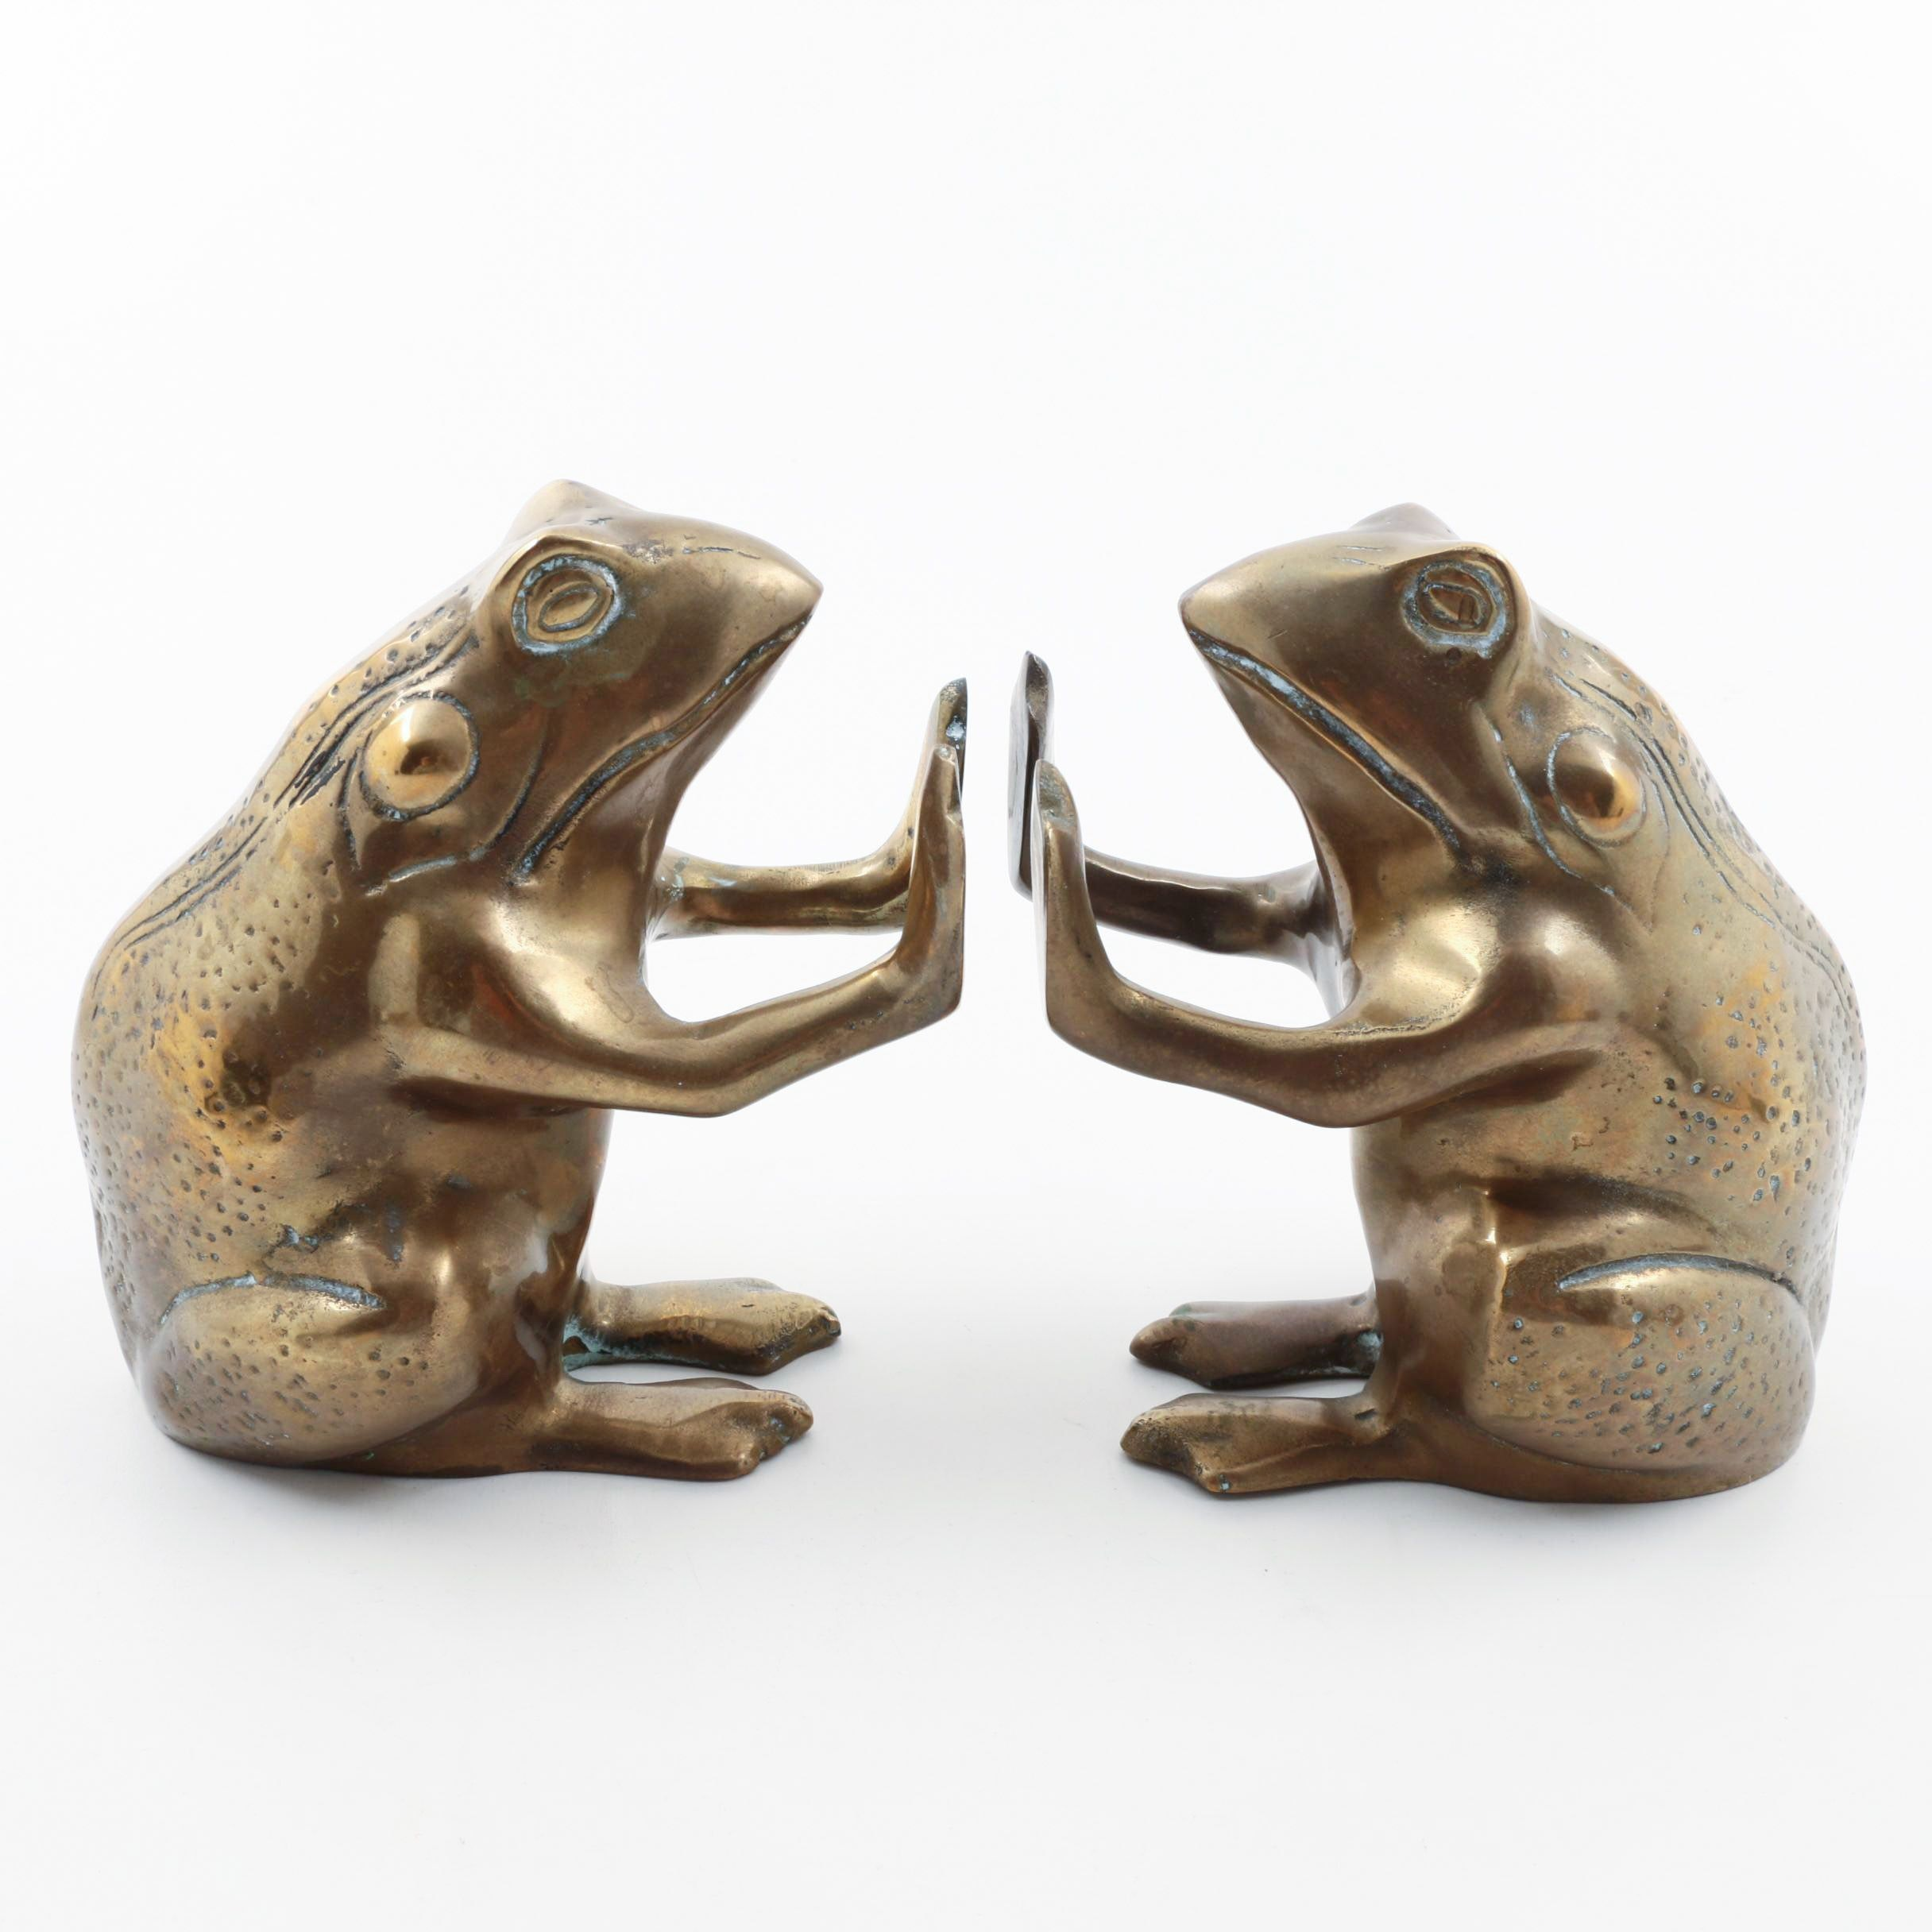 Pair of Brass Frog Bookends